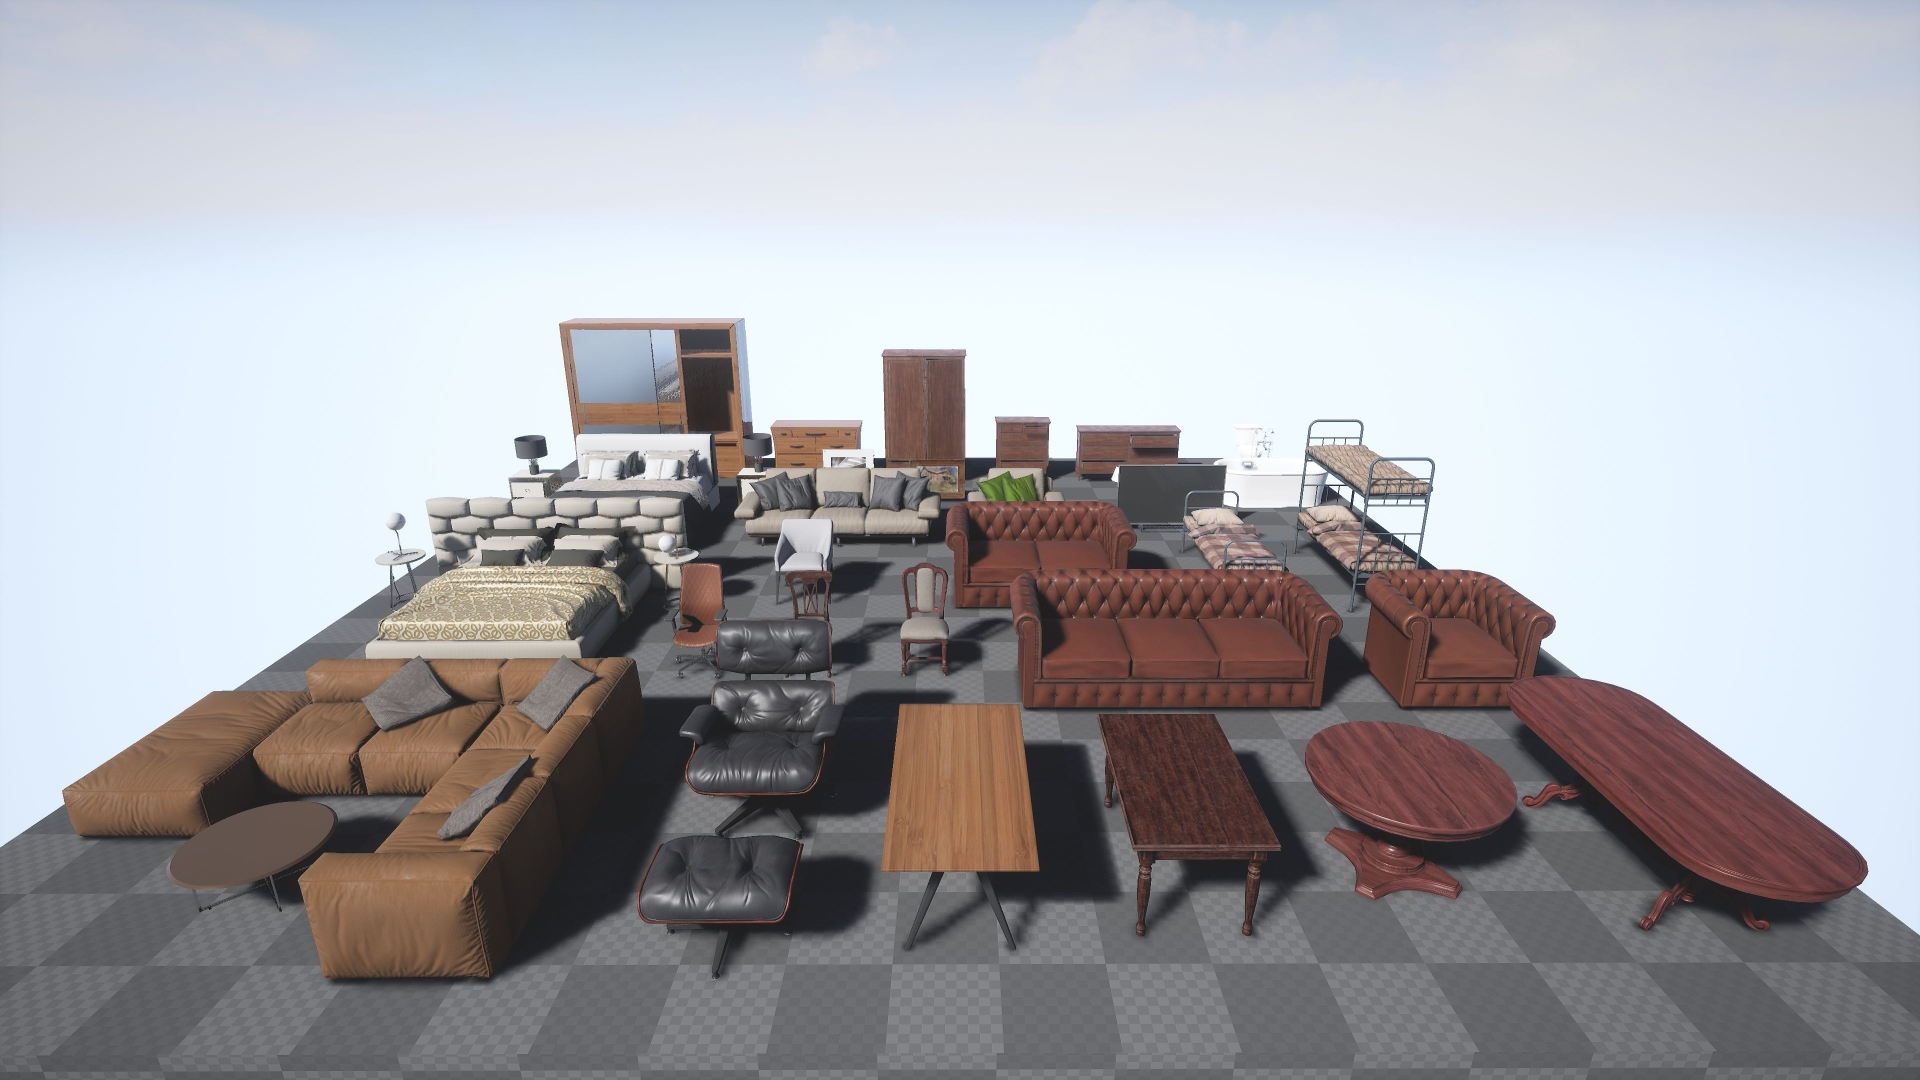 Free Furniture Pack by Next Level 3D in Props - UE4 Marketplace